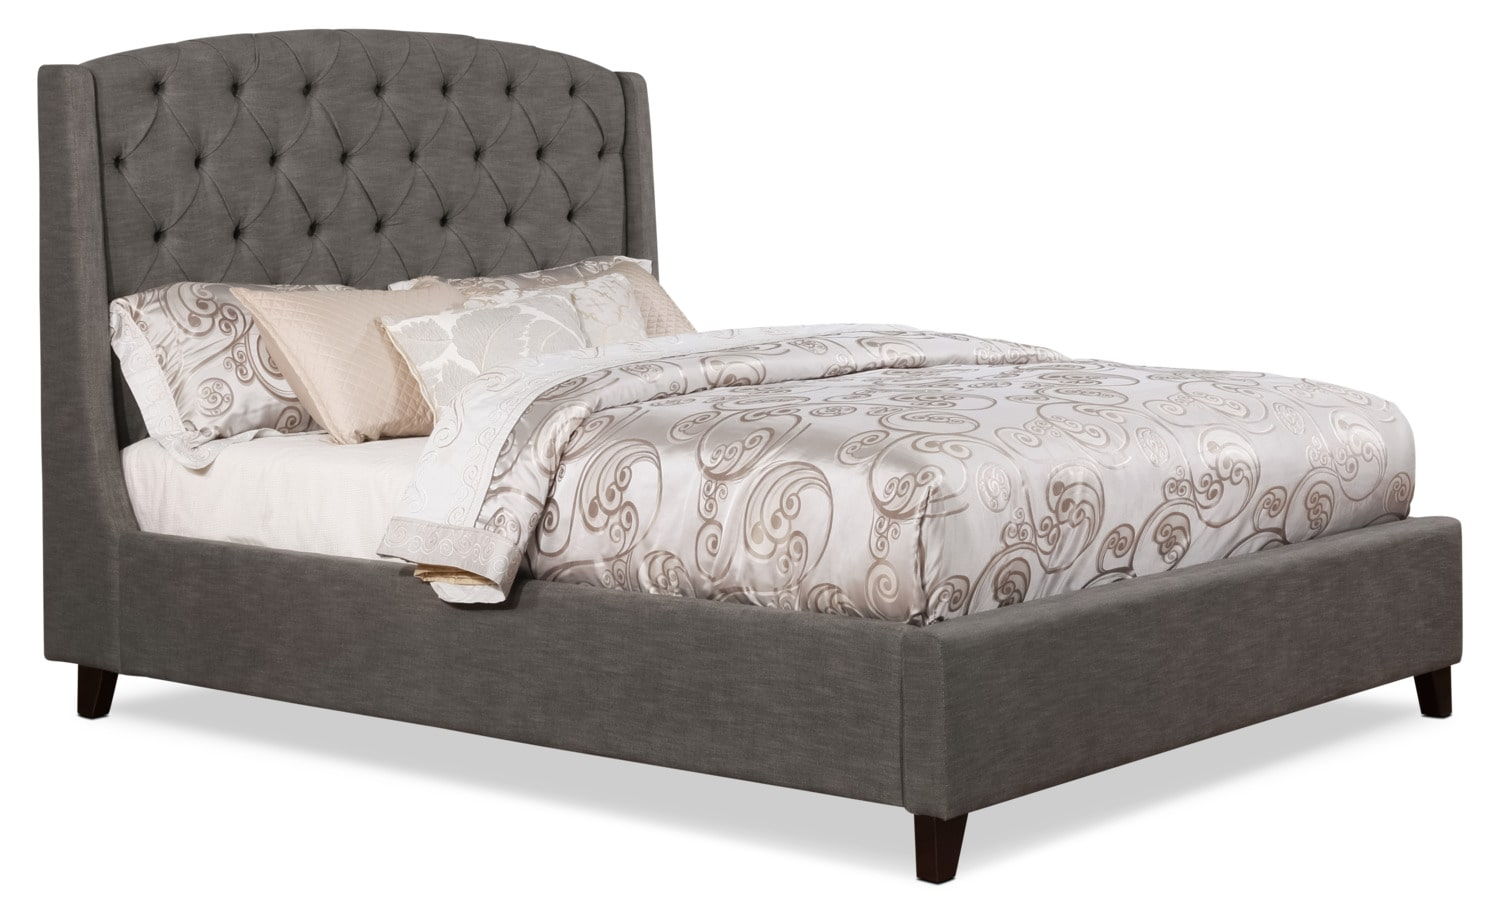 Oslo Queen Bed